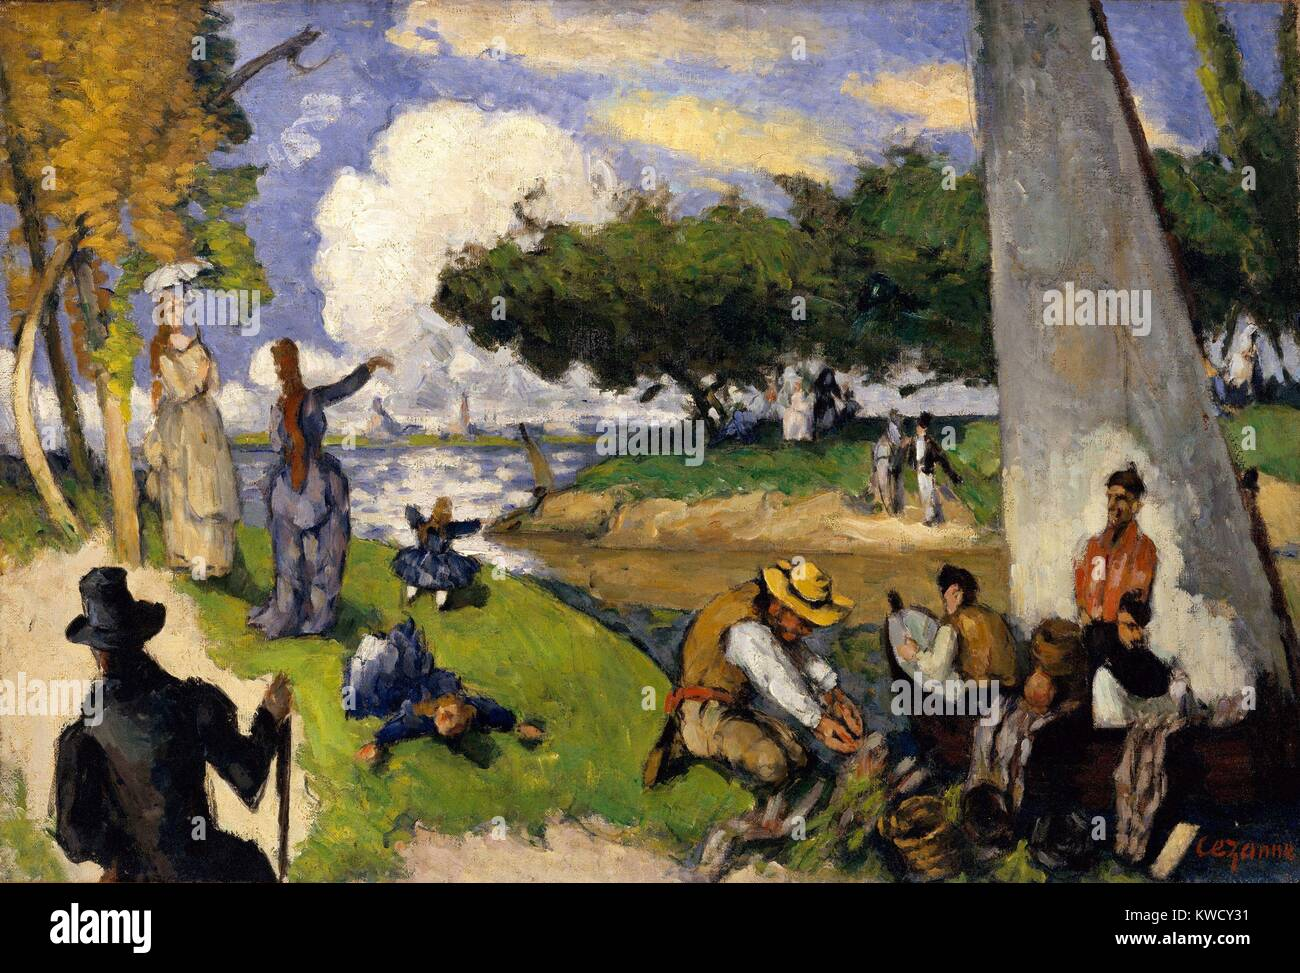 Fishermen (Fantastic Scene), by Paul Cezanne, 1875, French Post-Impressionist oil painting. This imagined scene Stock Photo